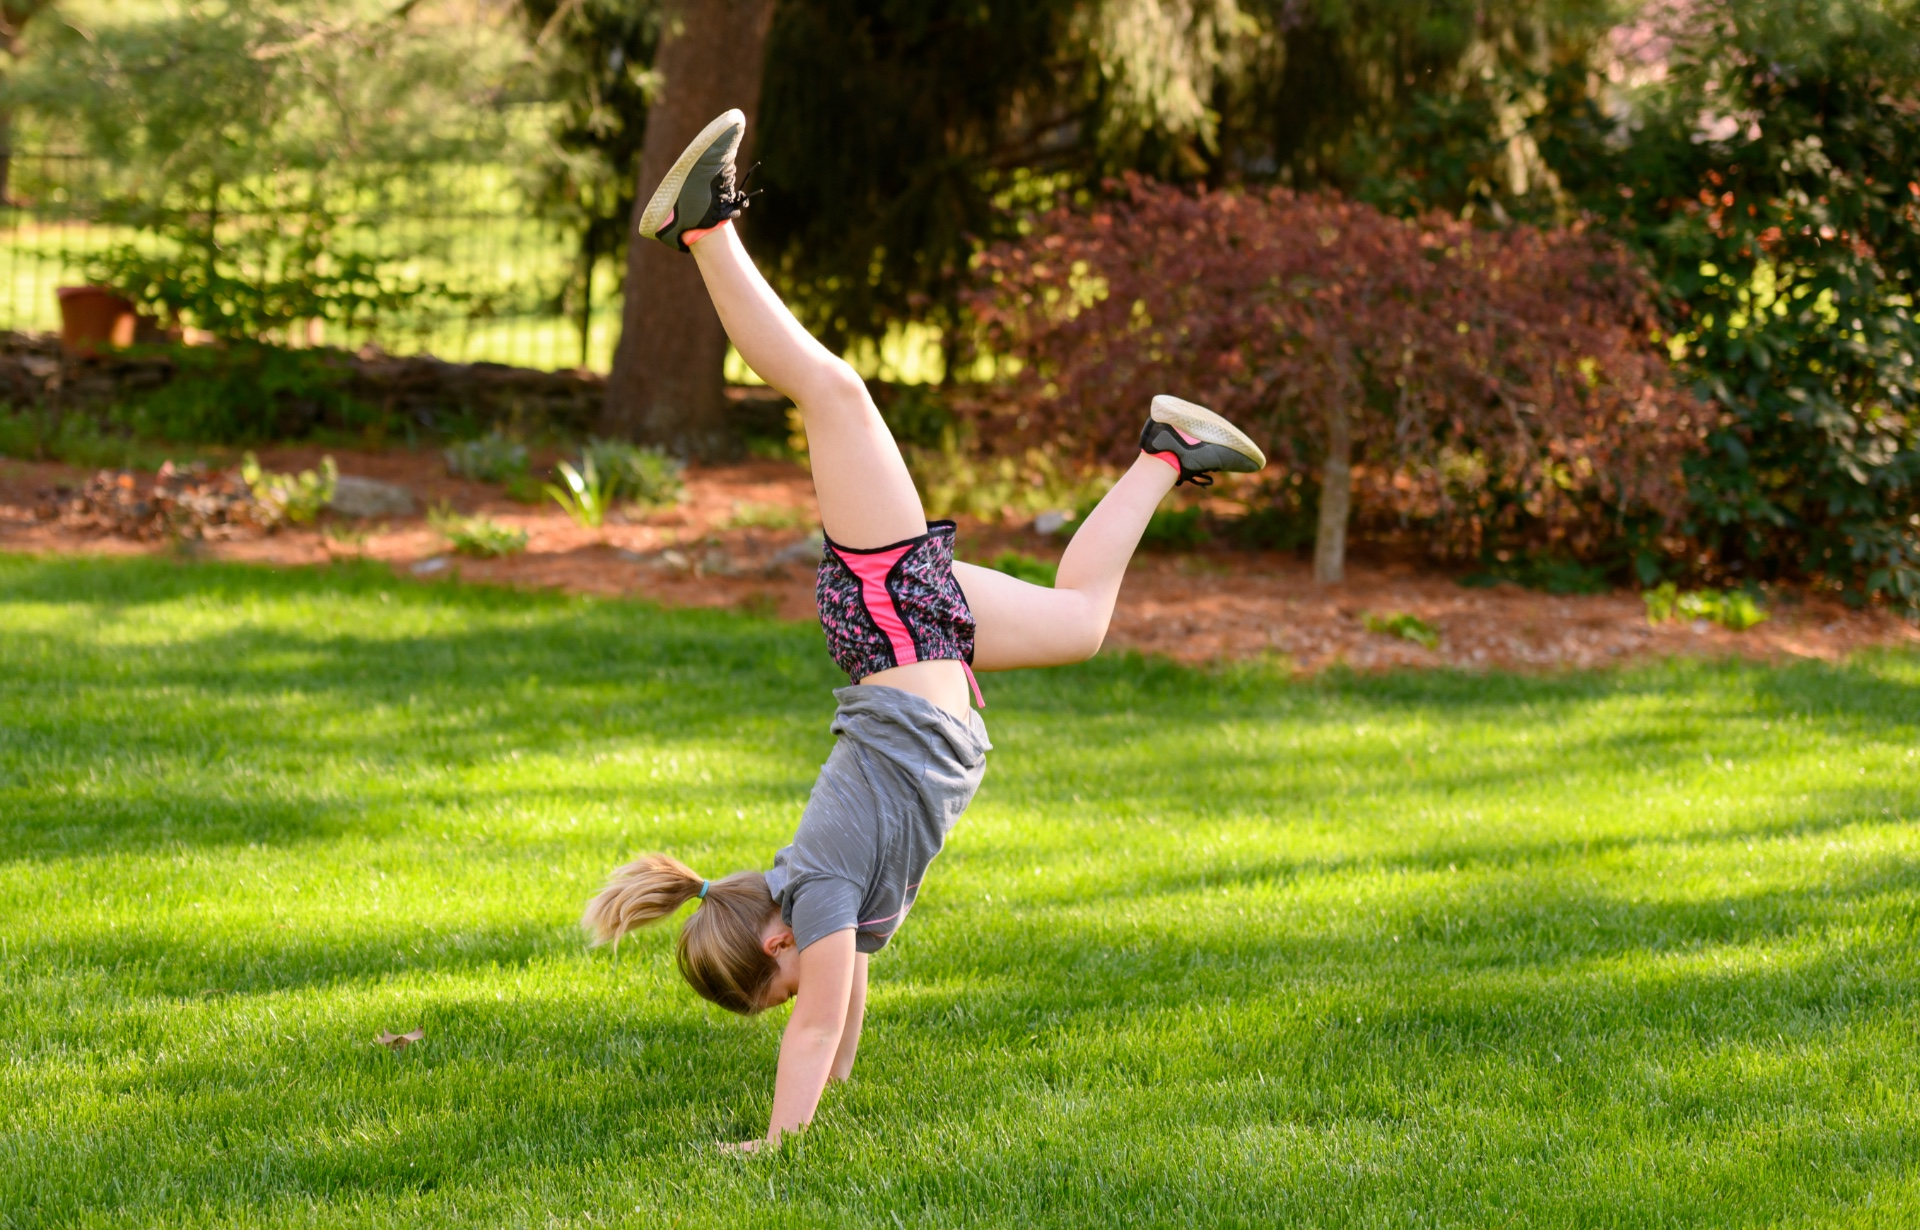 Sarah Beth does a handstand outside.